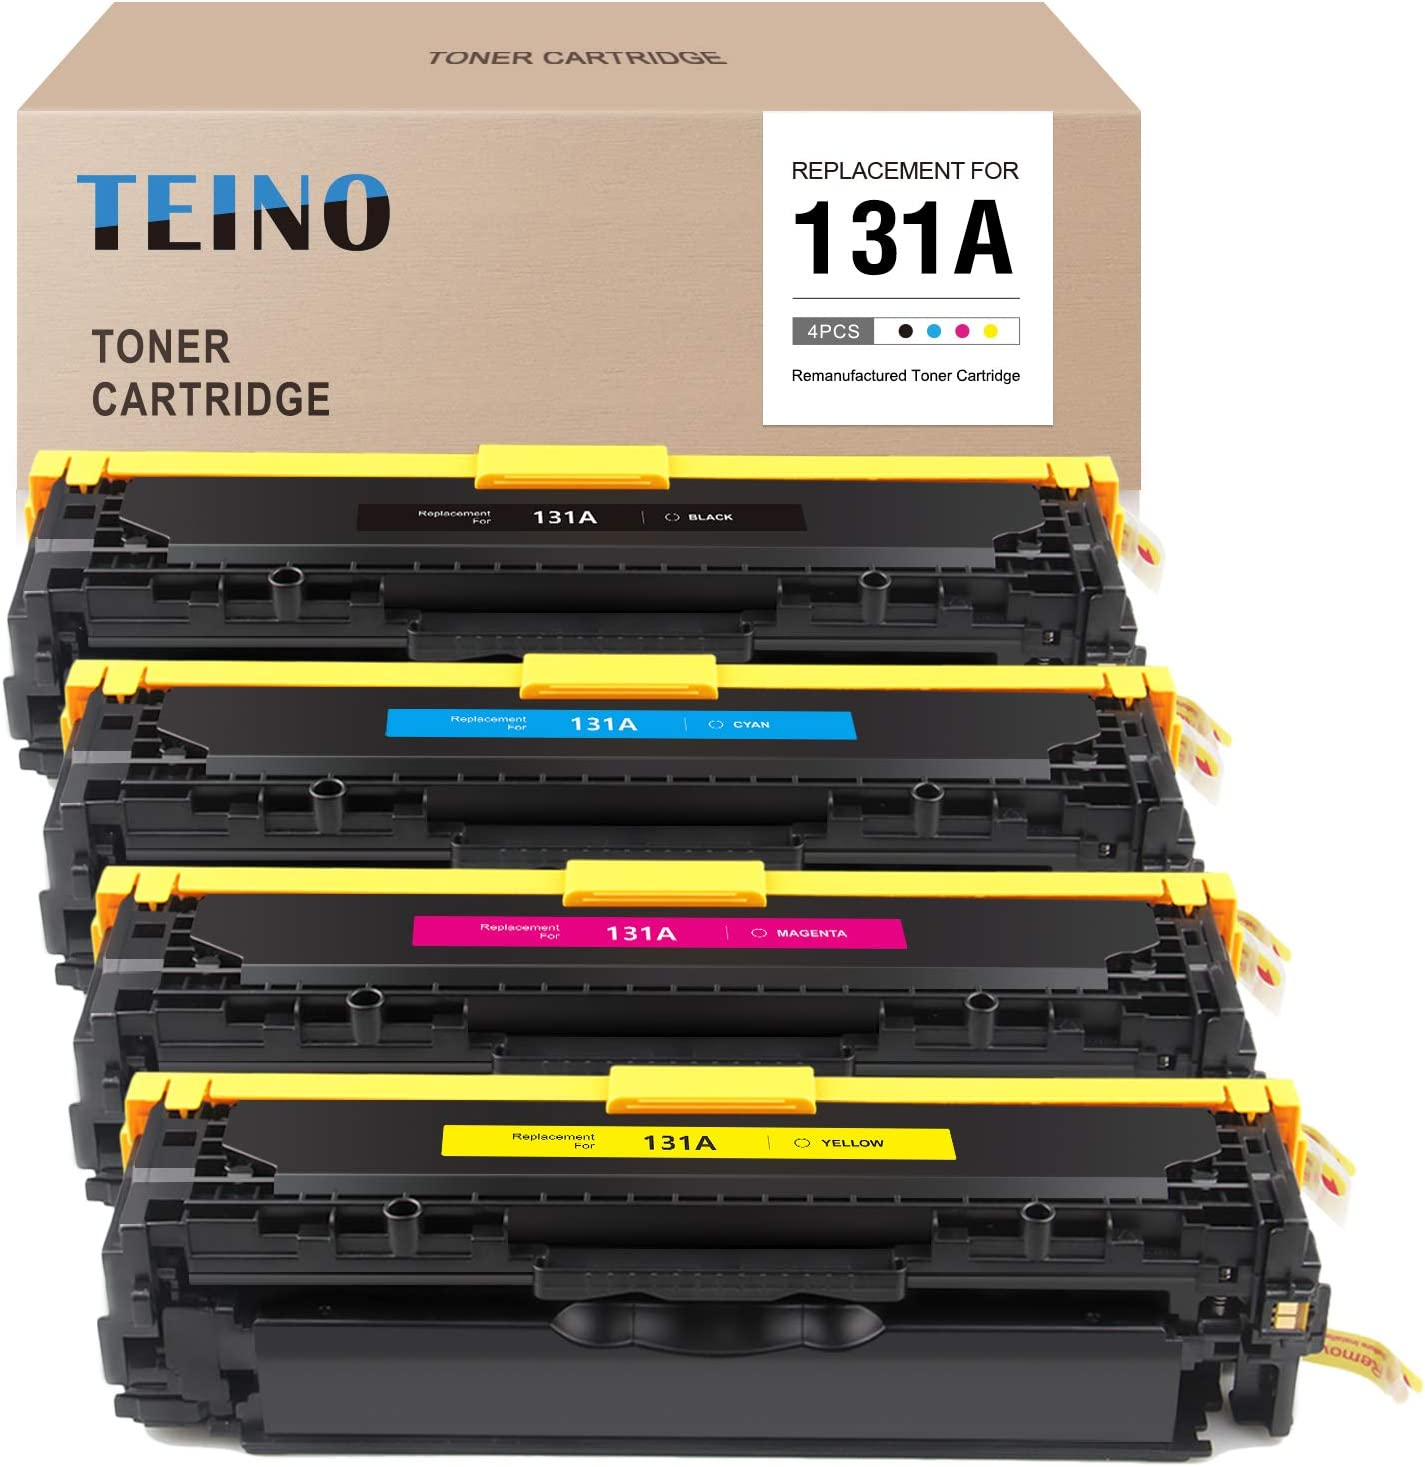 TEINO Remanufactured Toner Cartridge Replacement for HP 131A CF210A CF211A CF212A CF213A for Laserjet Pro 200 Color M251nw M251n MFP M276nw (Black, Cyan, Magenta, Yellow)